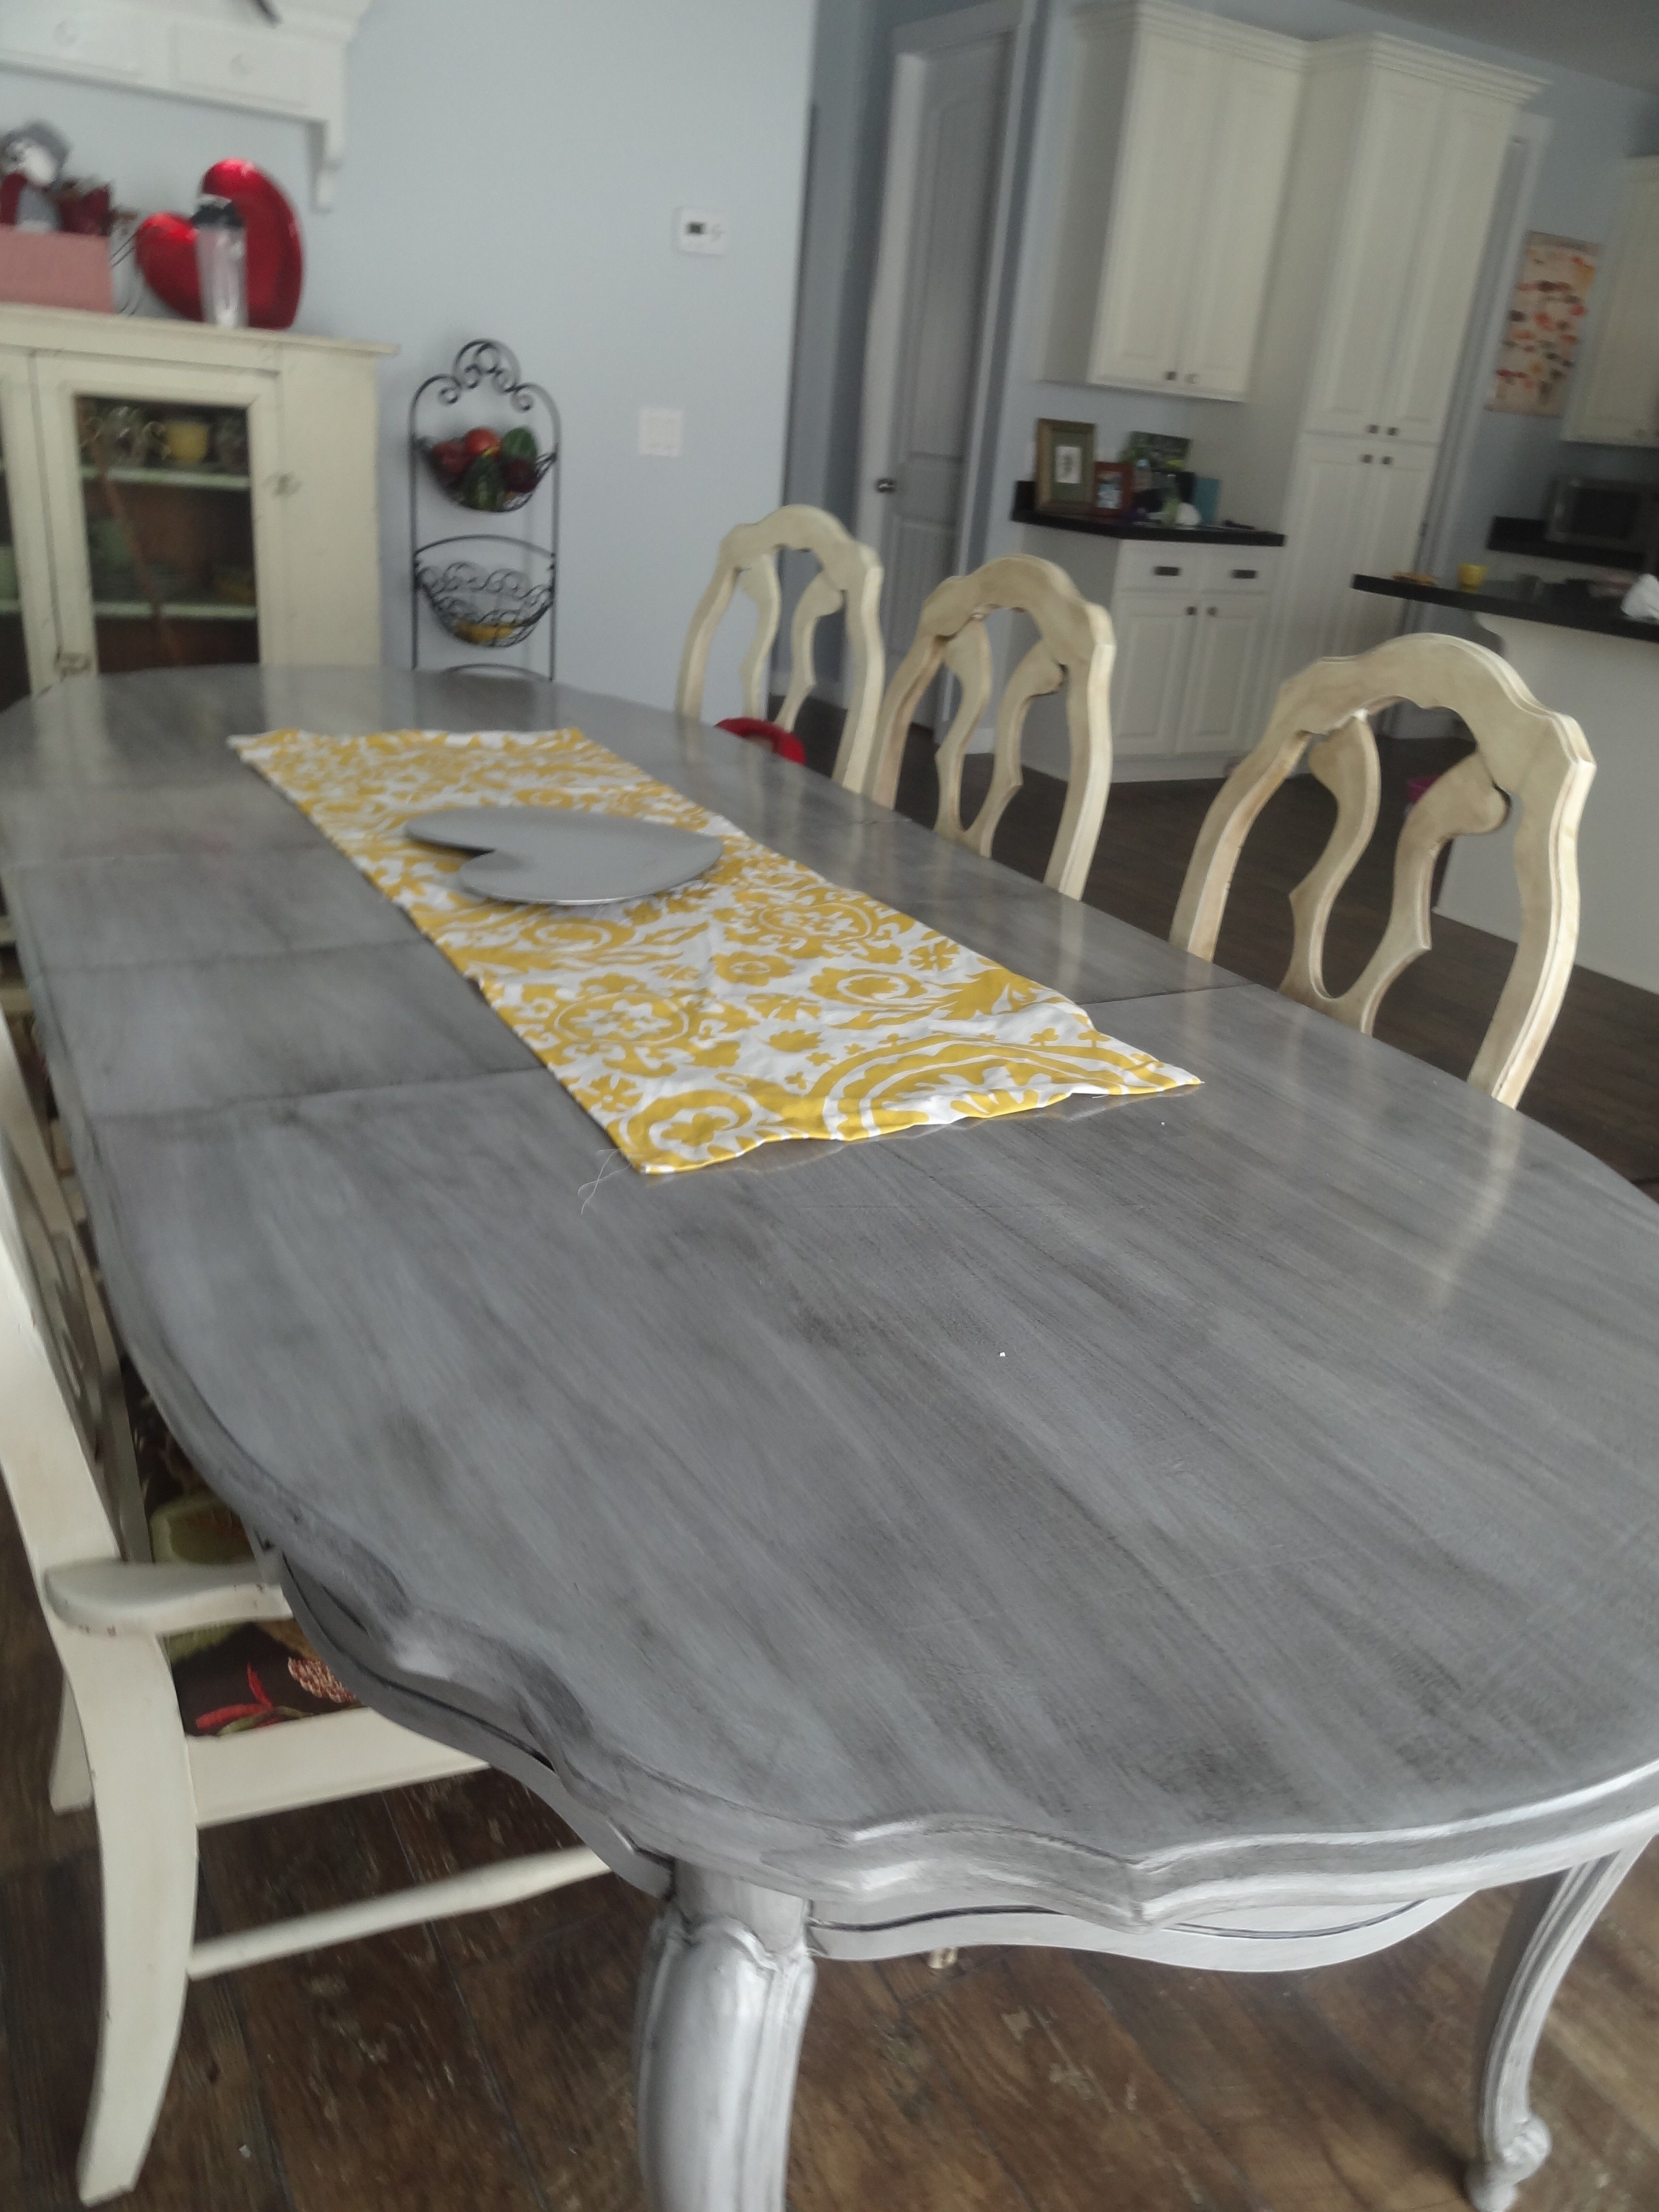 How to Refinish a Kitchen Table Part 2 | My Mommy Style Blog Posts ...